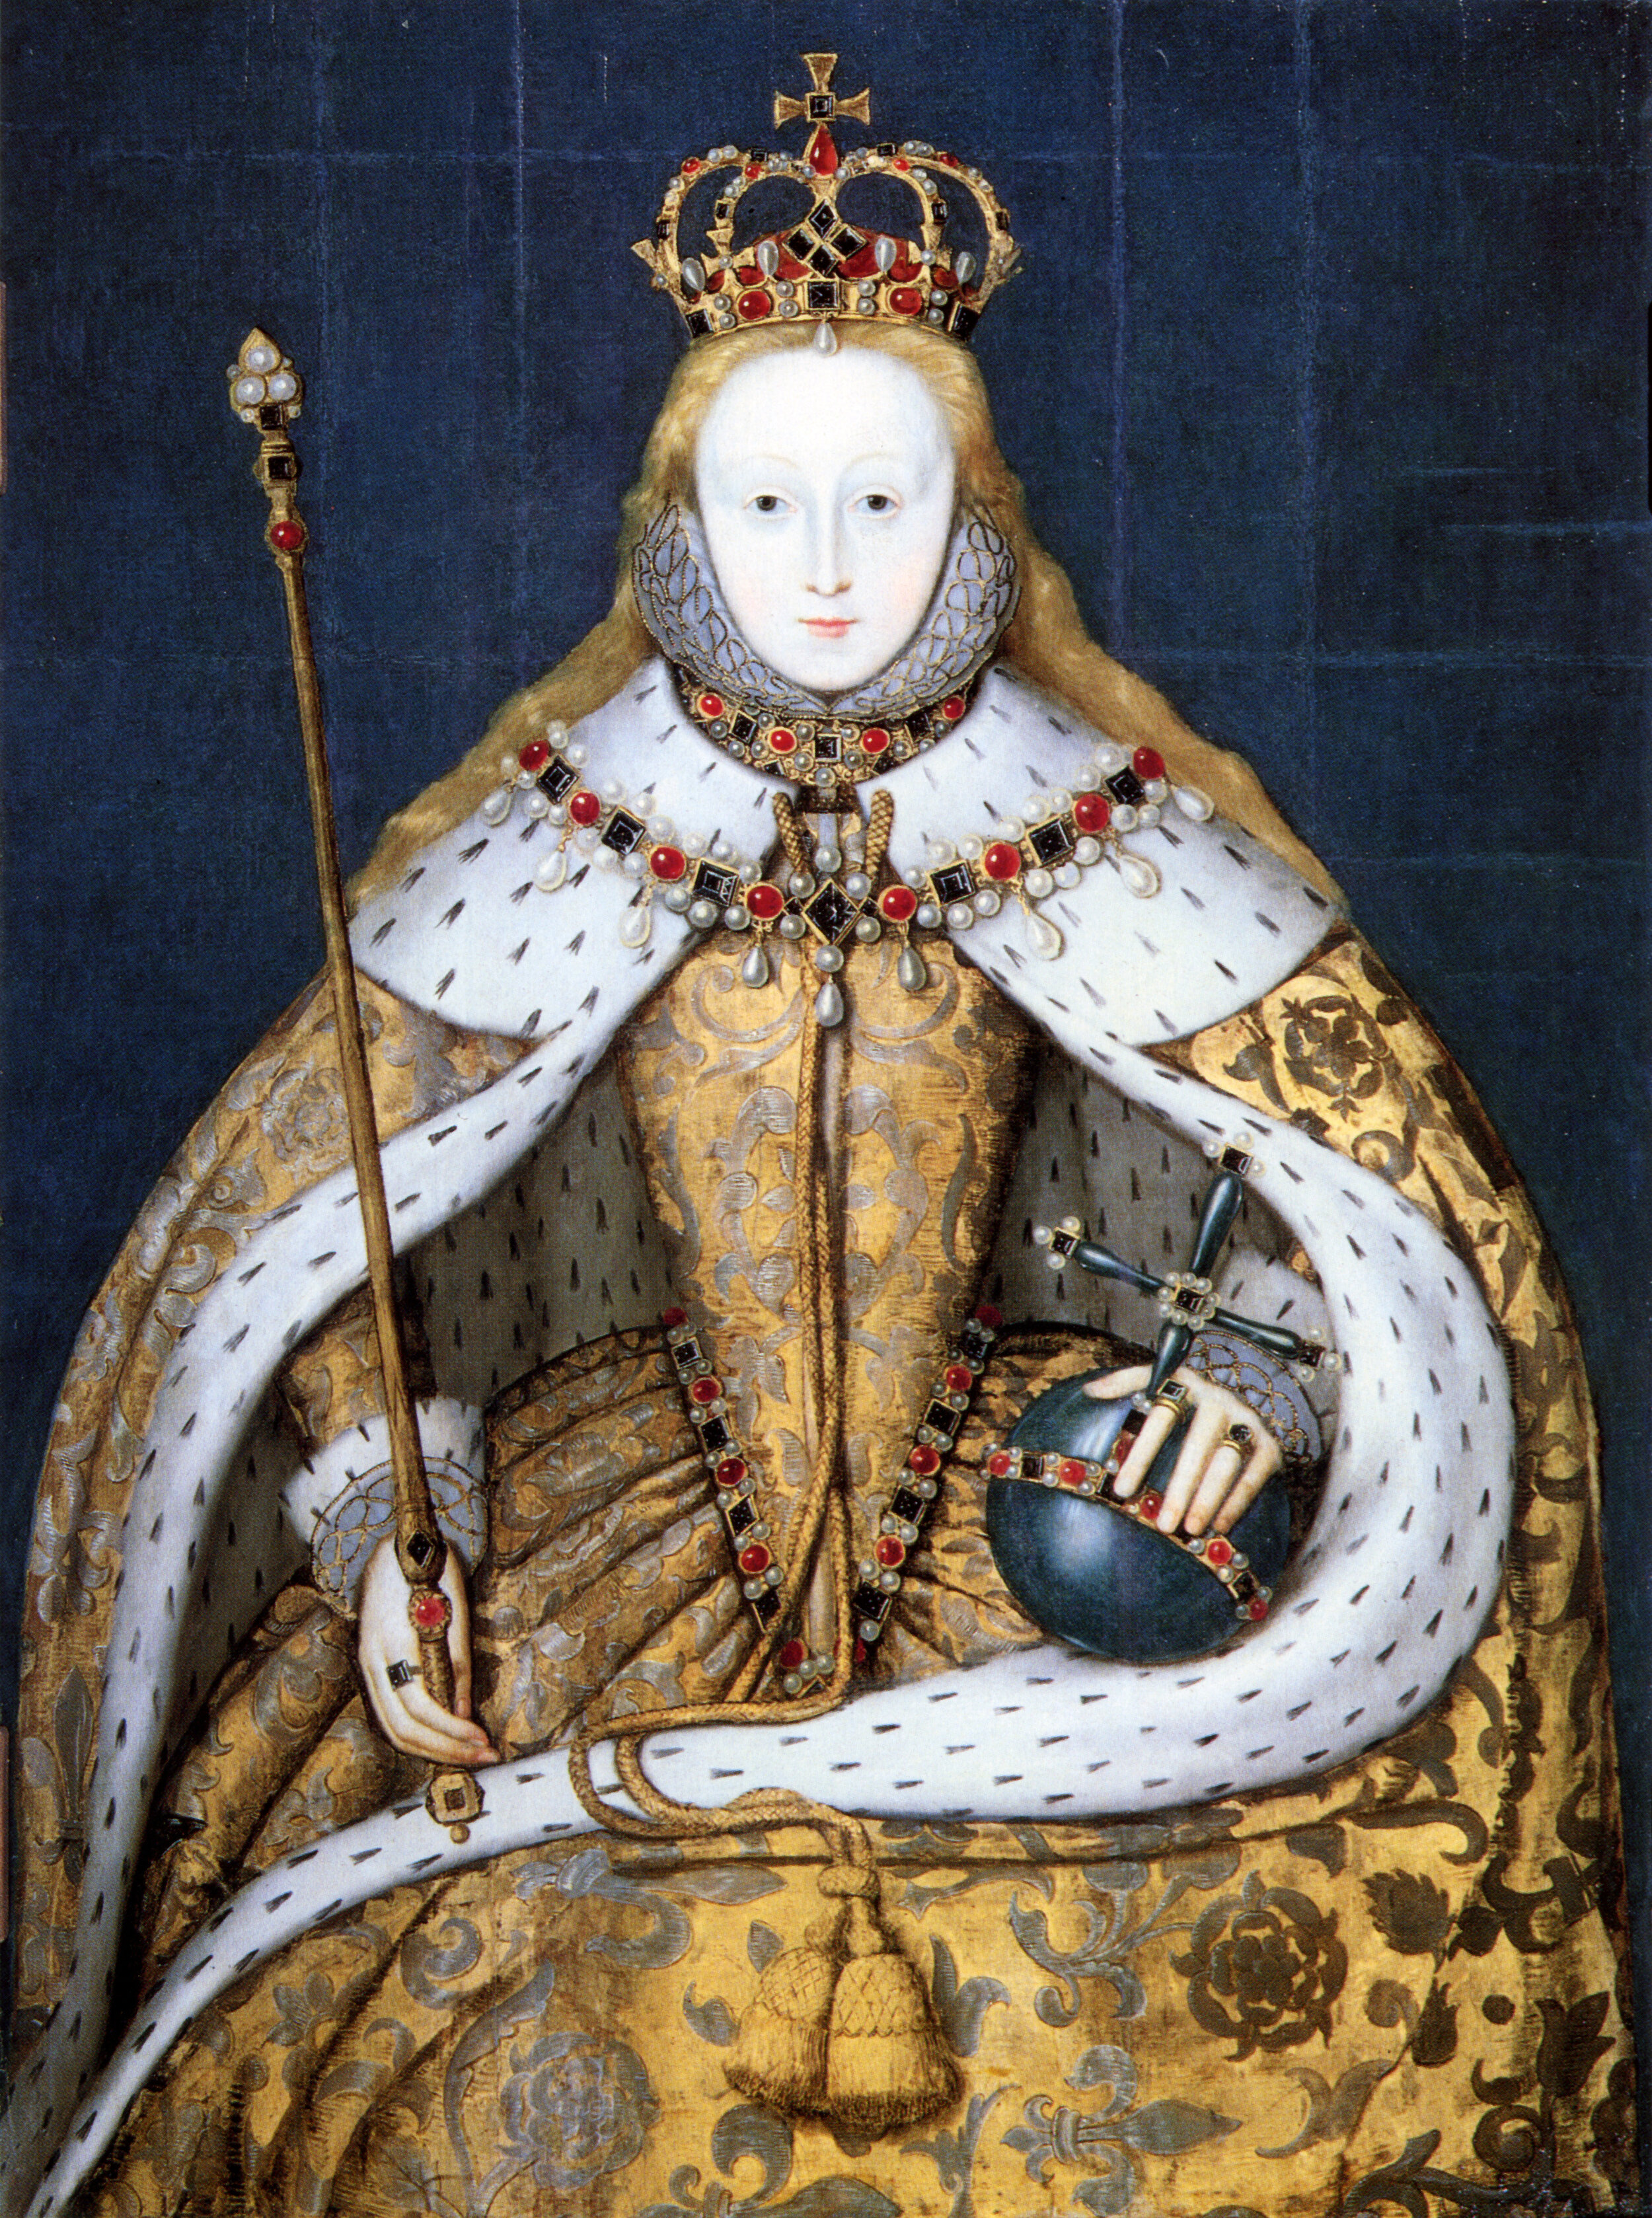 big forehead, lead face paint, scanty eyebrows… I'm into it. - A young Elizabeth I portrait, Wikicommons